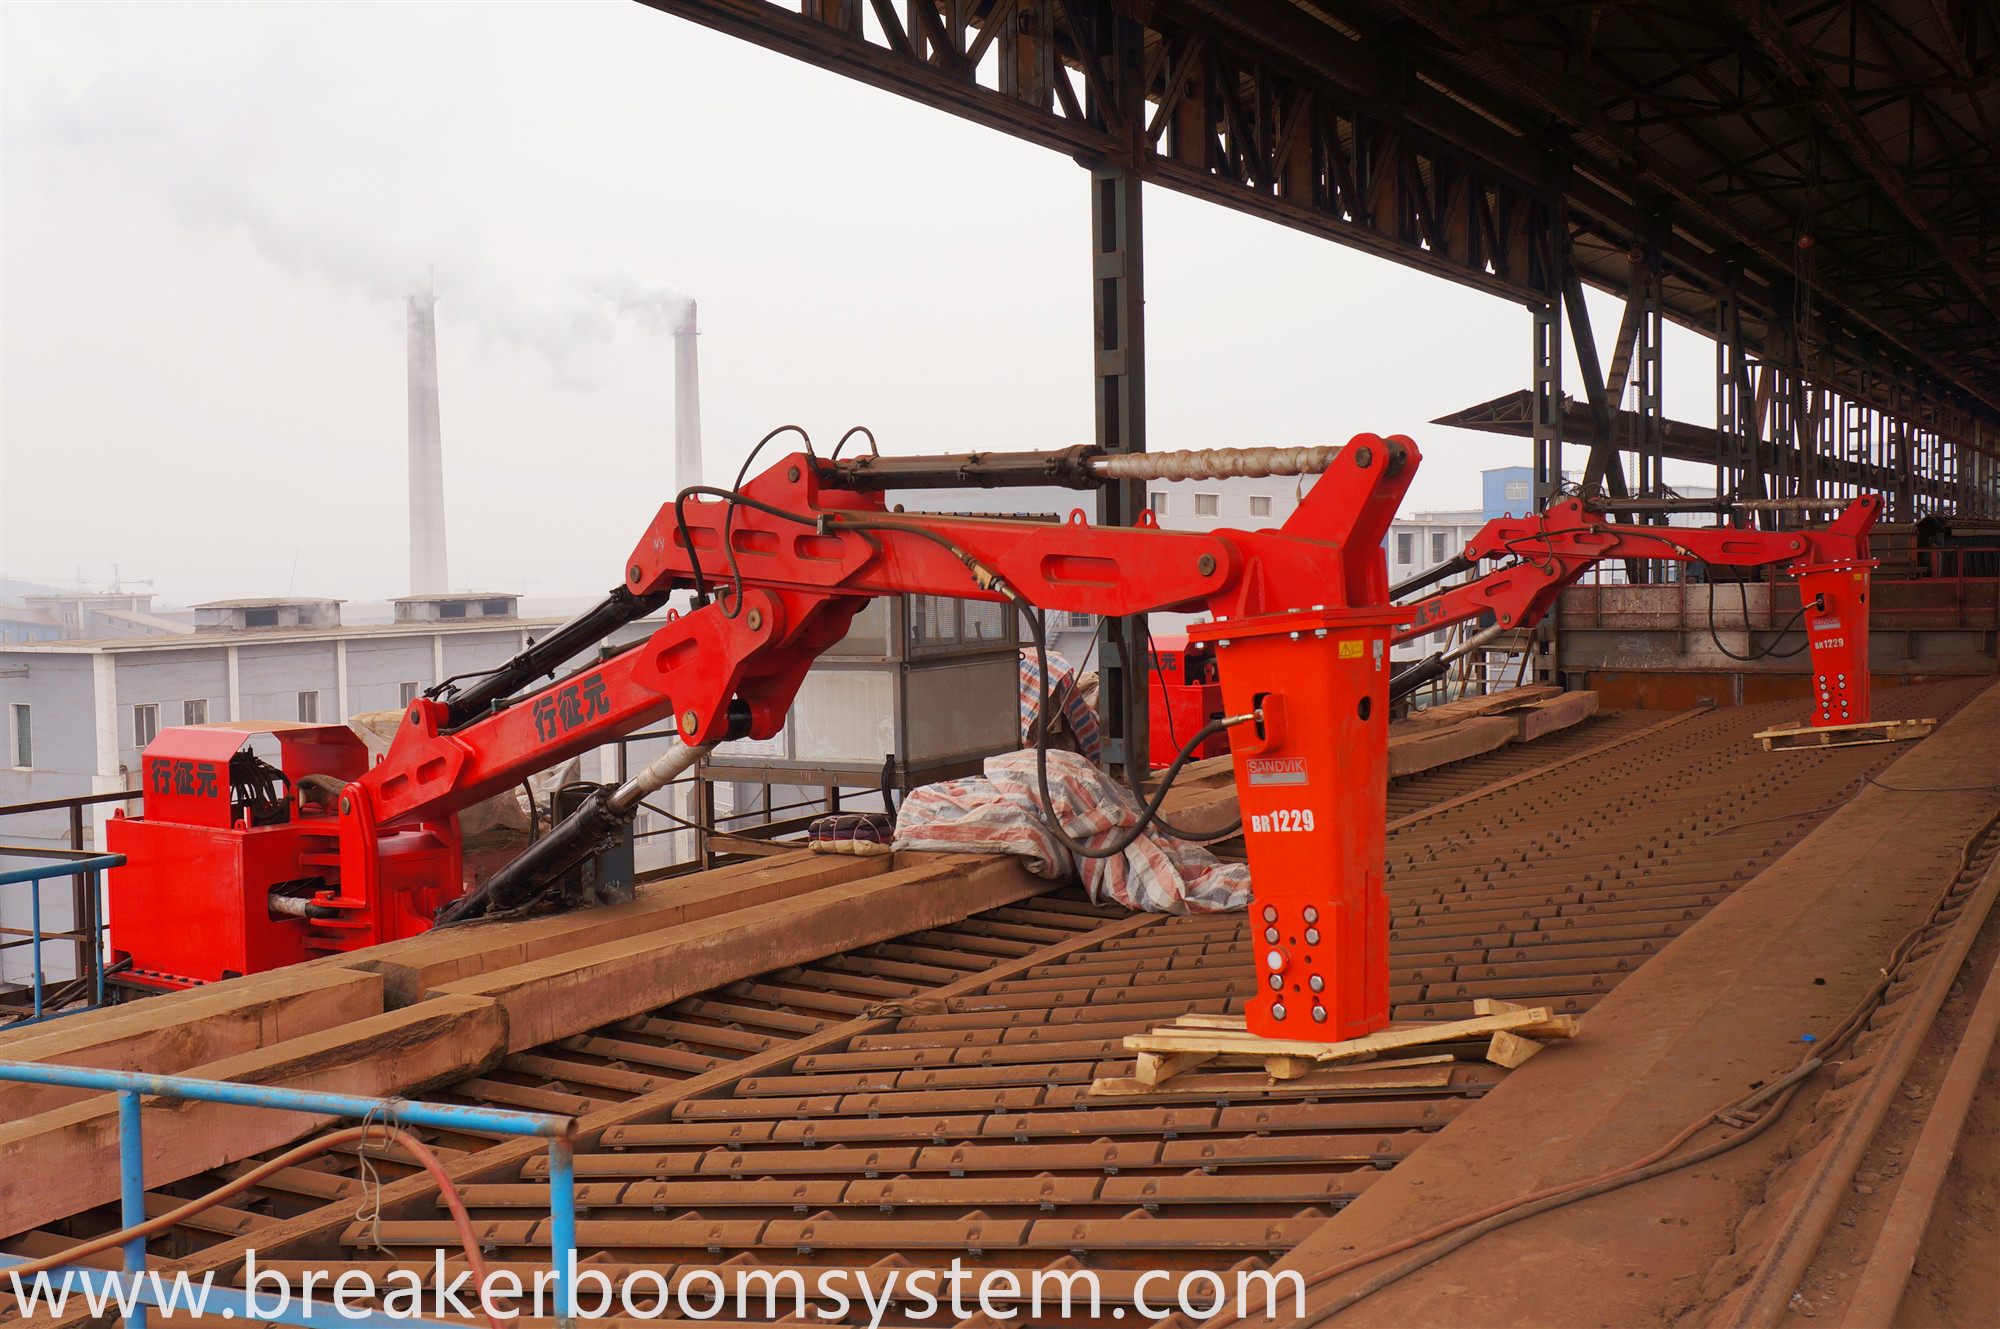 Hydraulic Rock Breaker Booms System